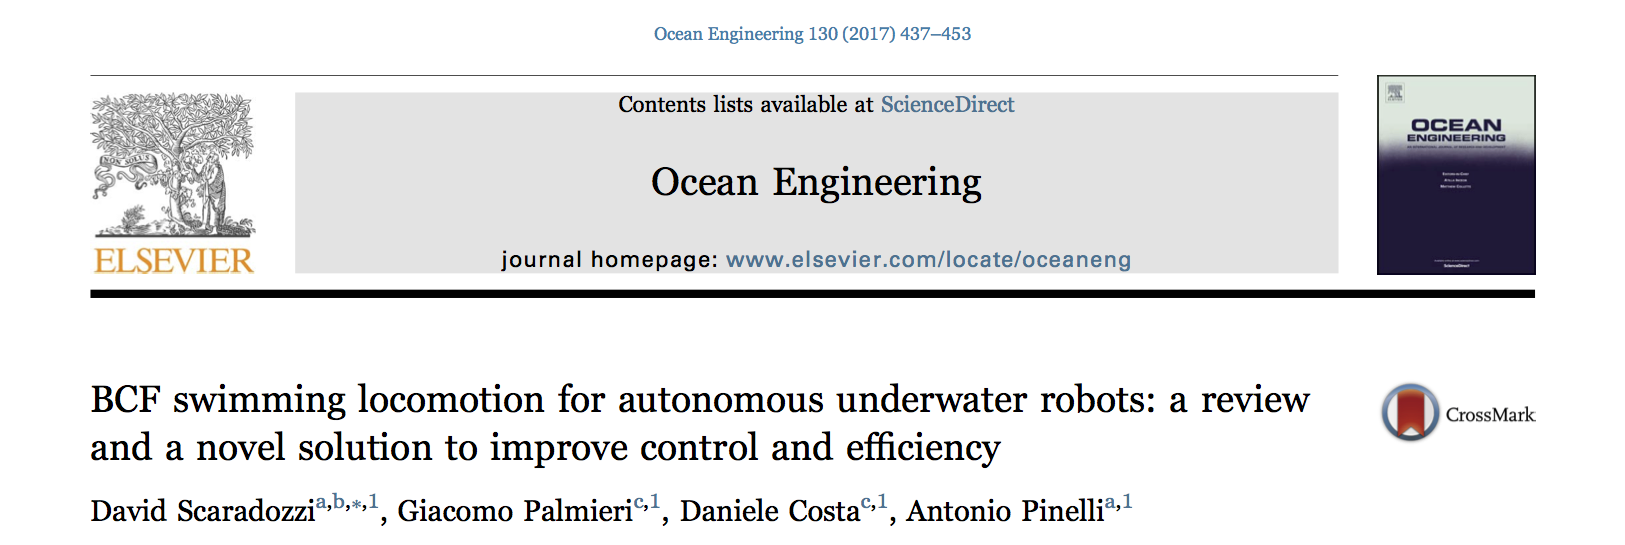 BCF swimming locomotion for autonomous underwater robots: a review and a novel solution to improve control and efficiency